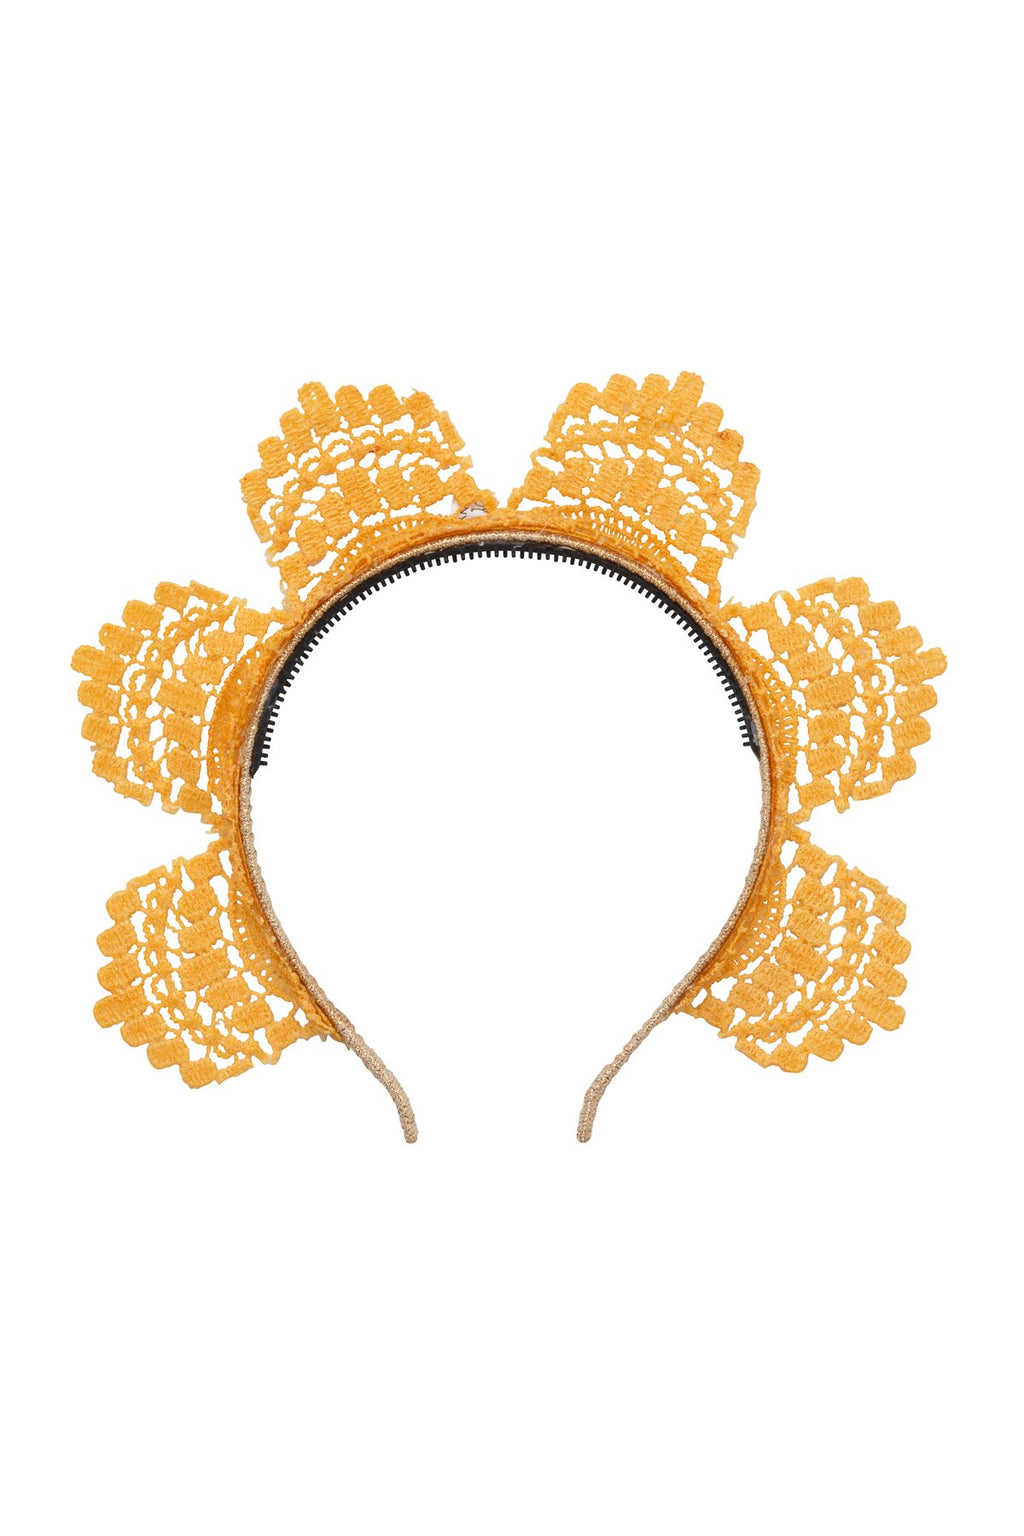 Rising Princess Headband - Gold - PROJECT 6, modest fashion